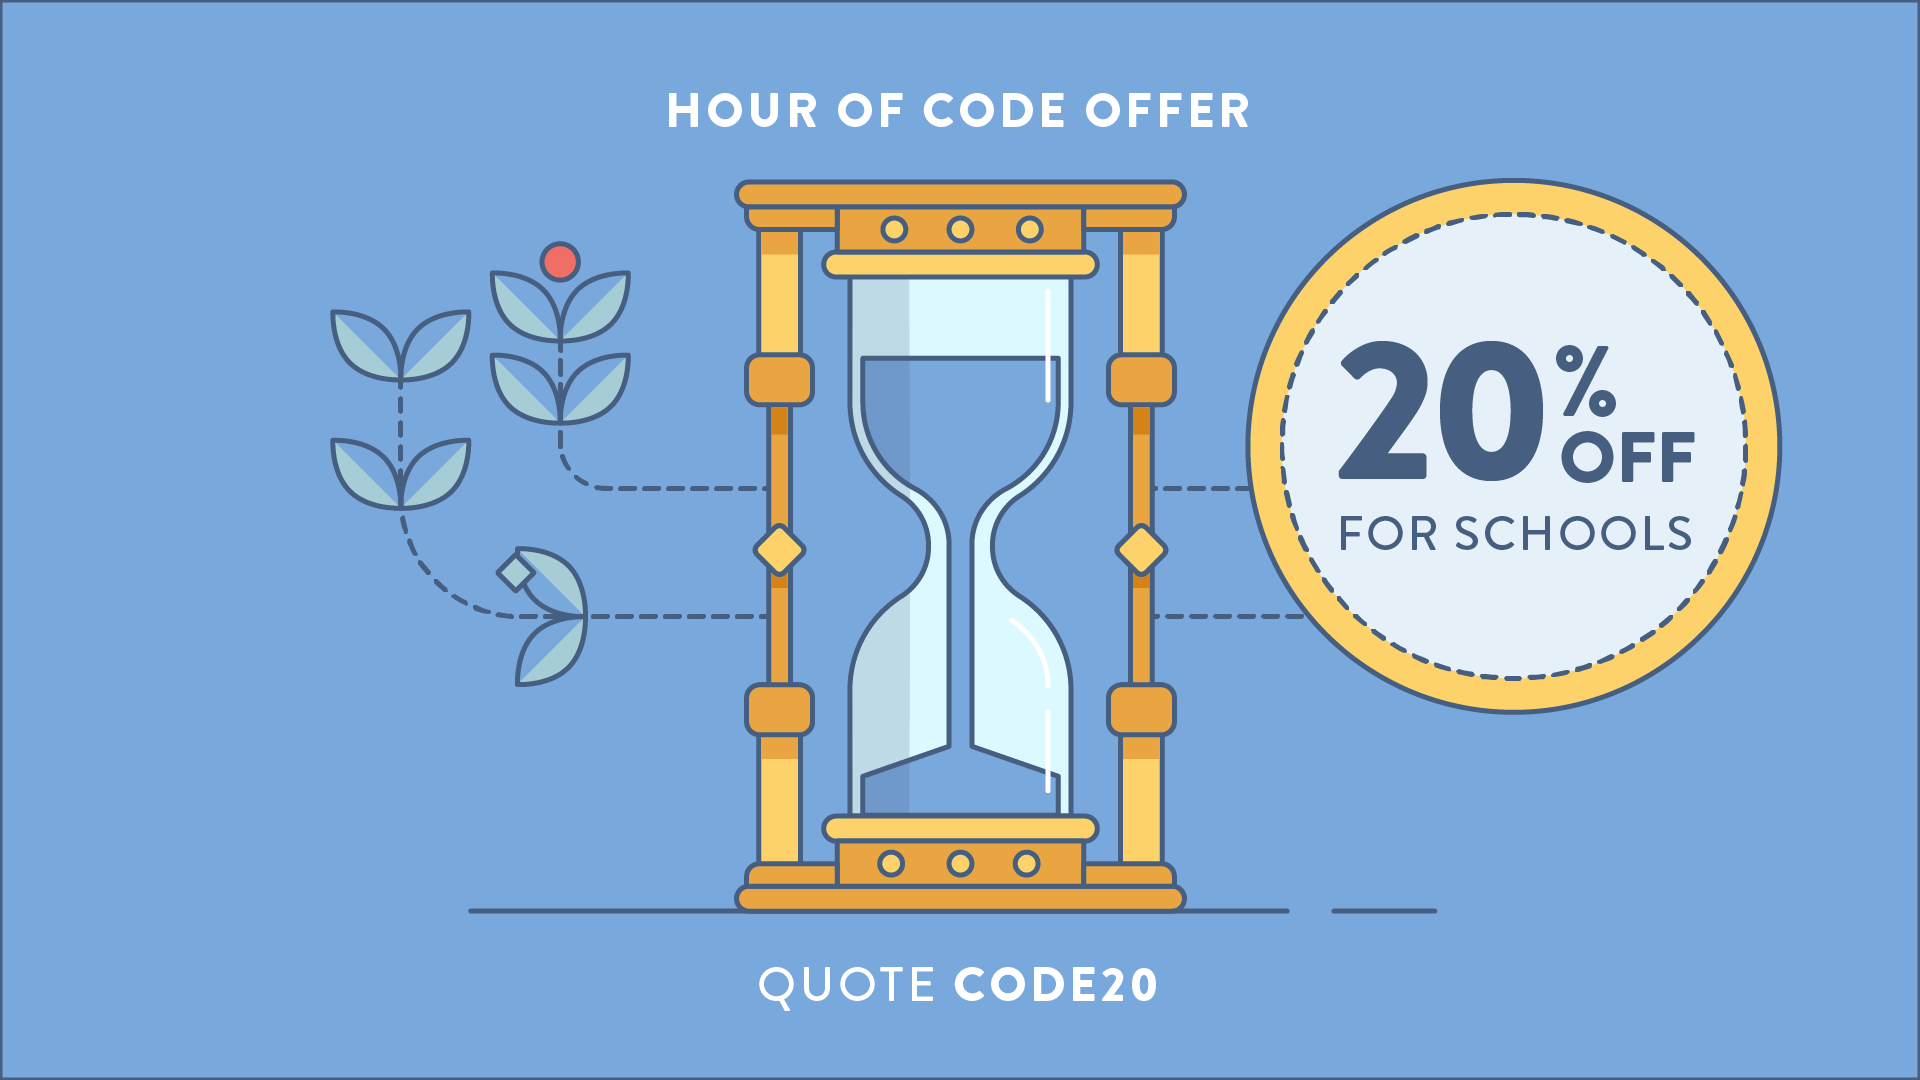 Hour of Code - 20% Special Offer